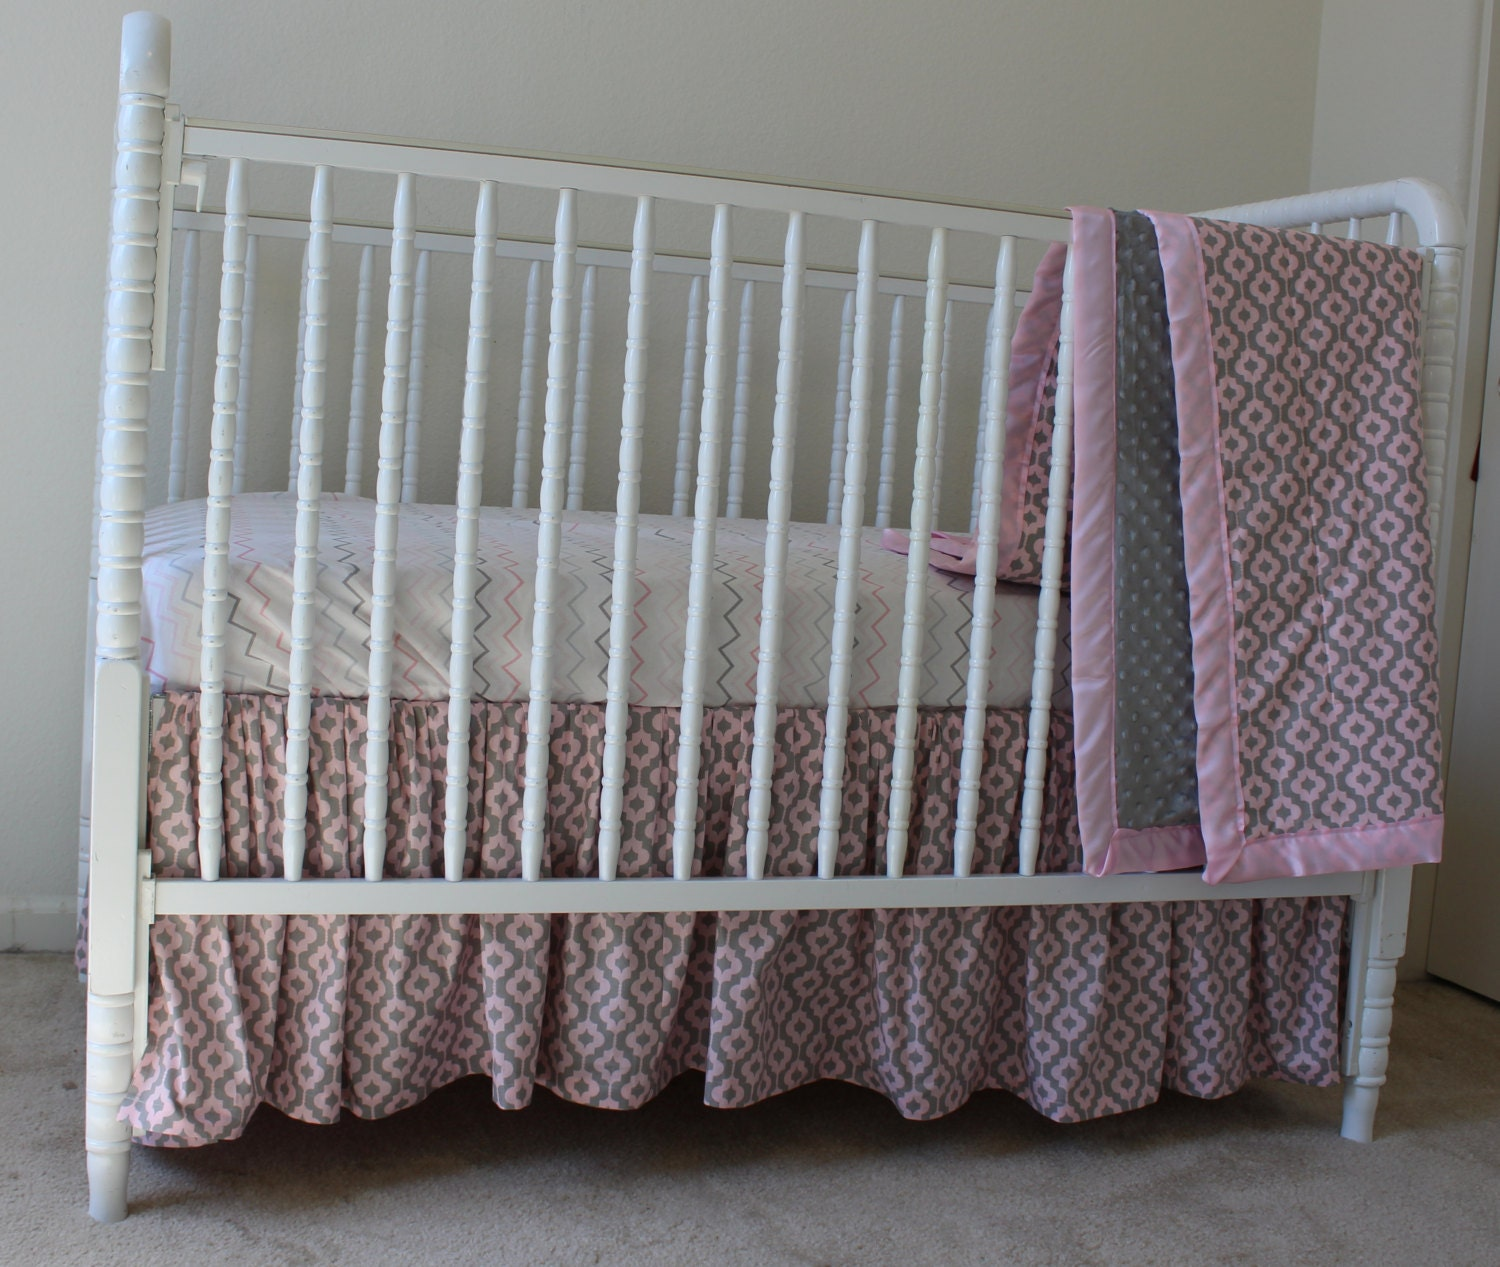 final design of your own baby bedding | Design Your Own Baby Bedding with our help Gray by ...